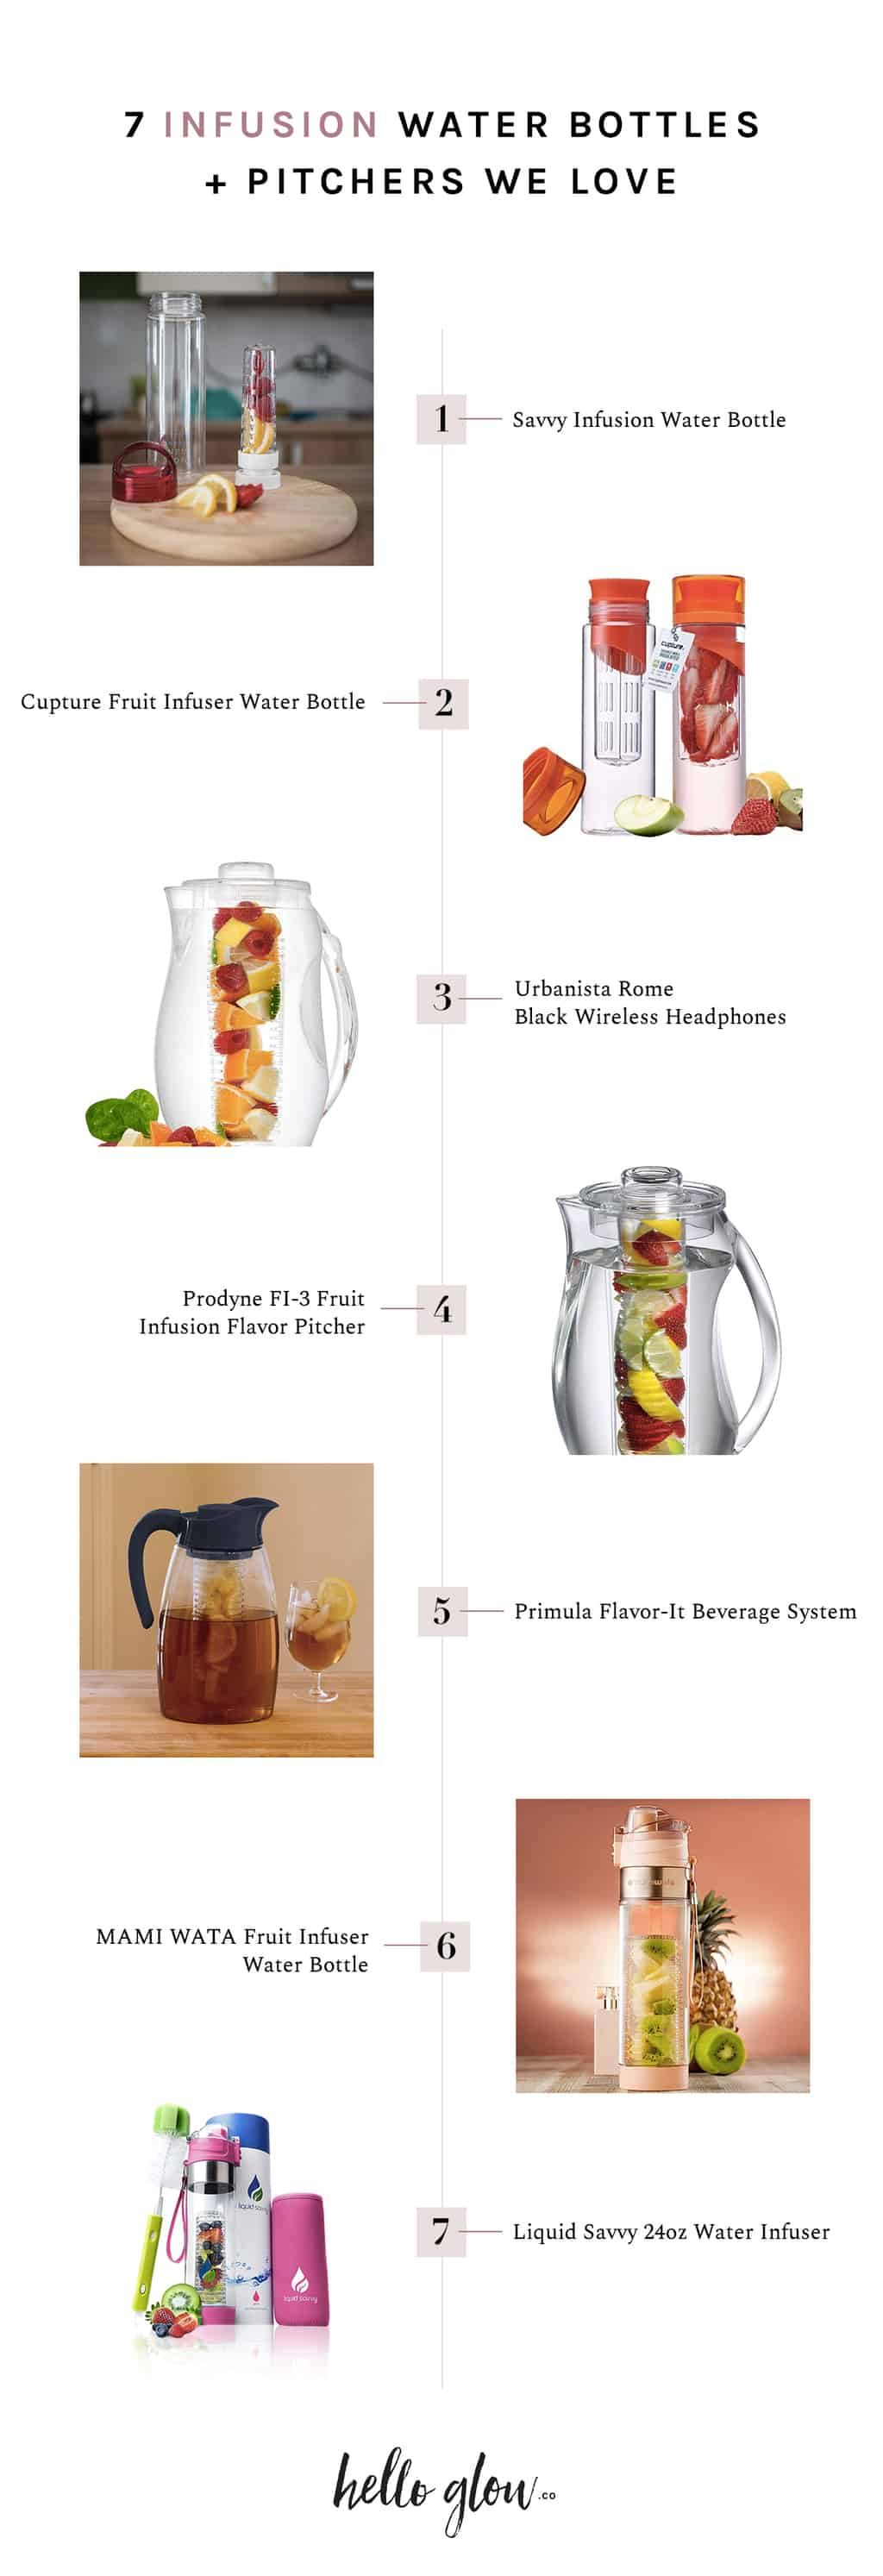 Infusion Water Bottle + Pitchers That We Love